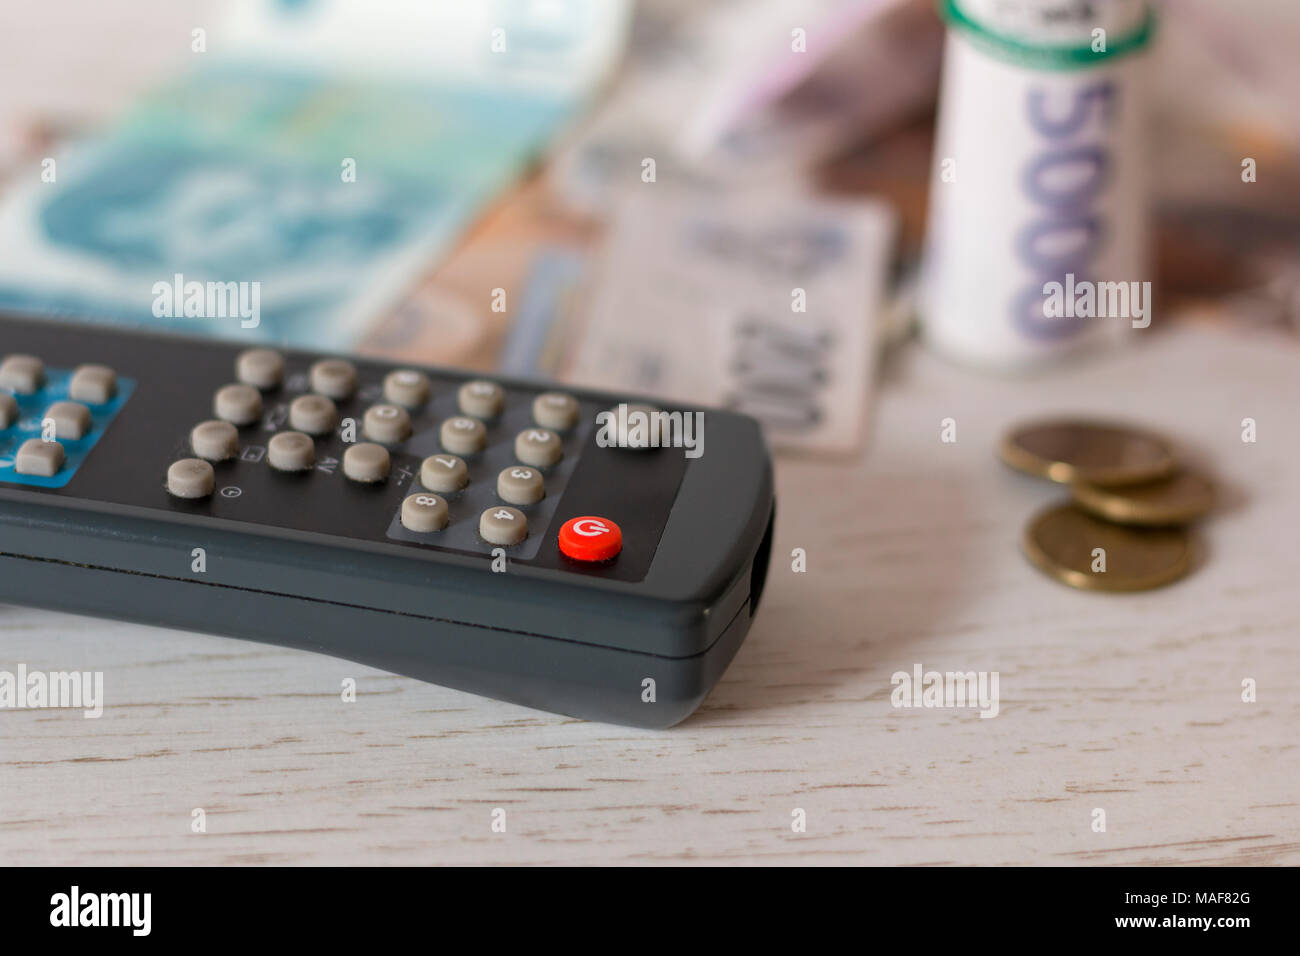 TV remote controle and Serbian paper money, close up shot Stock Photo